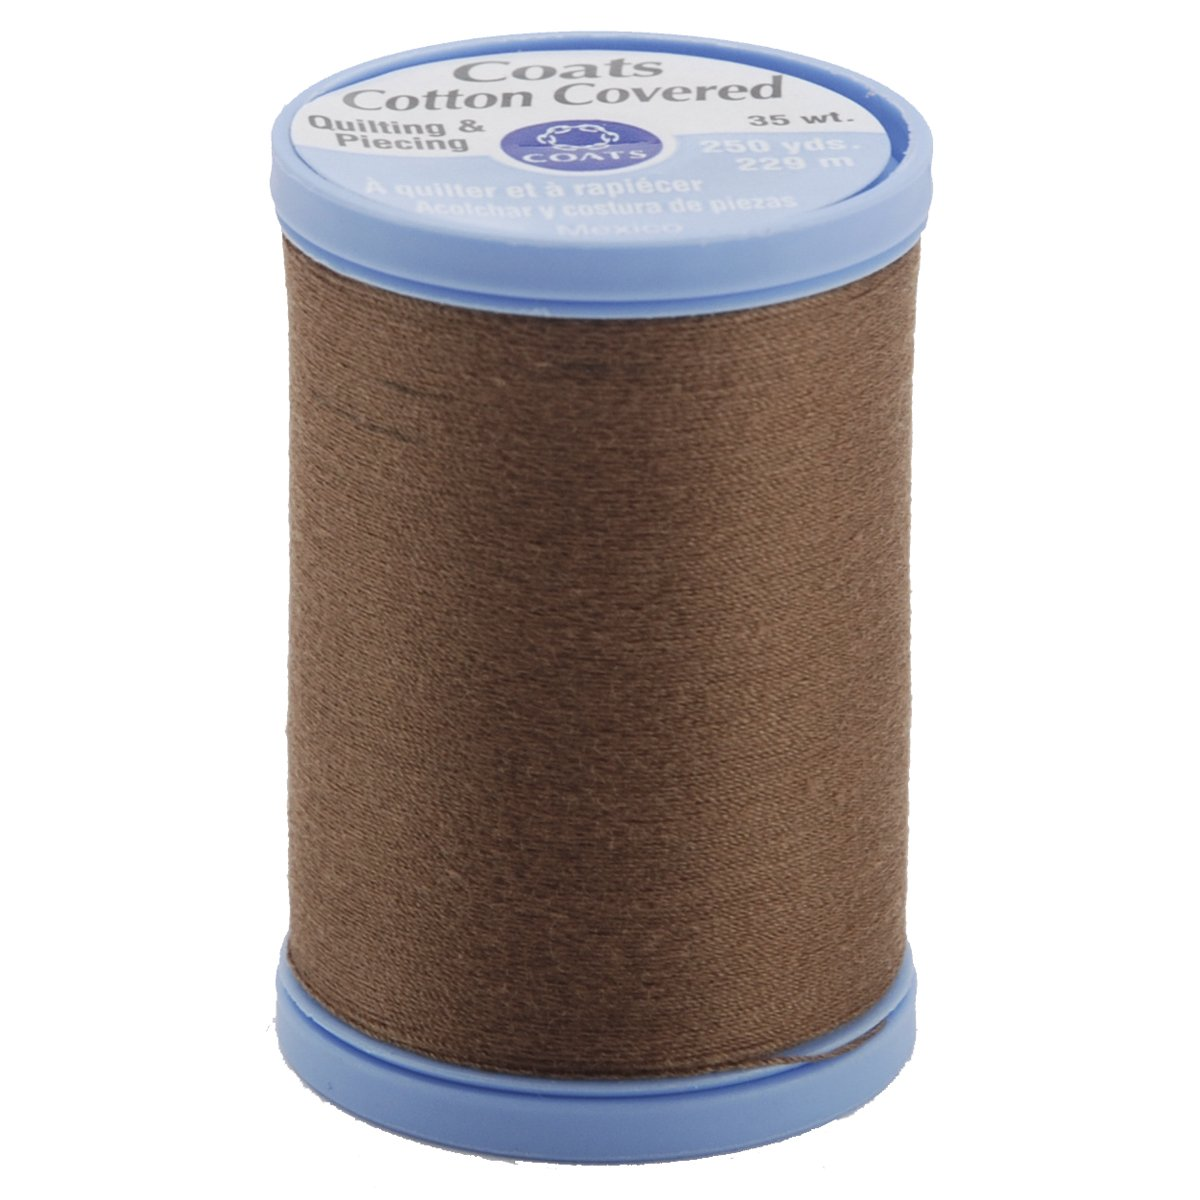 COATS & CLARK Cotton Covered Quilting and Piecing Thread, 250-Yard, Summer Brown S925-8360 027793